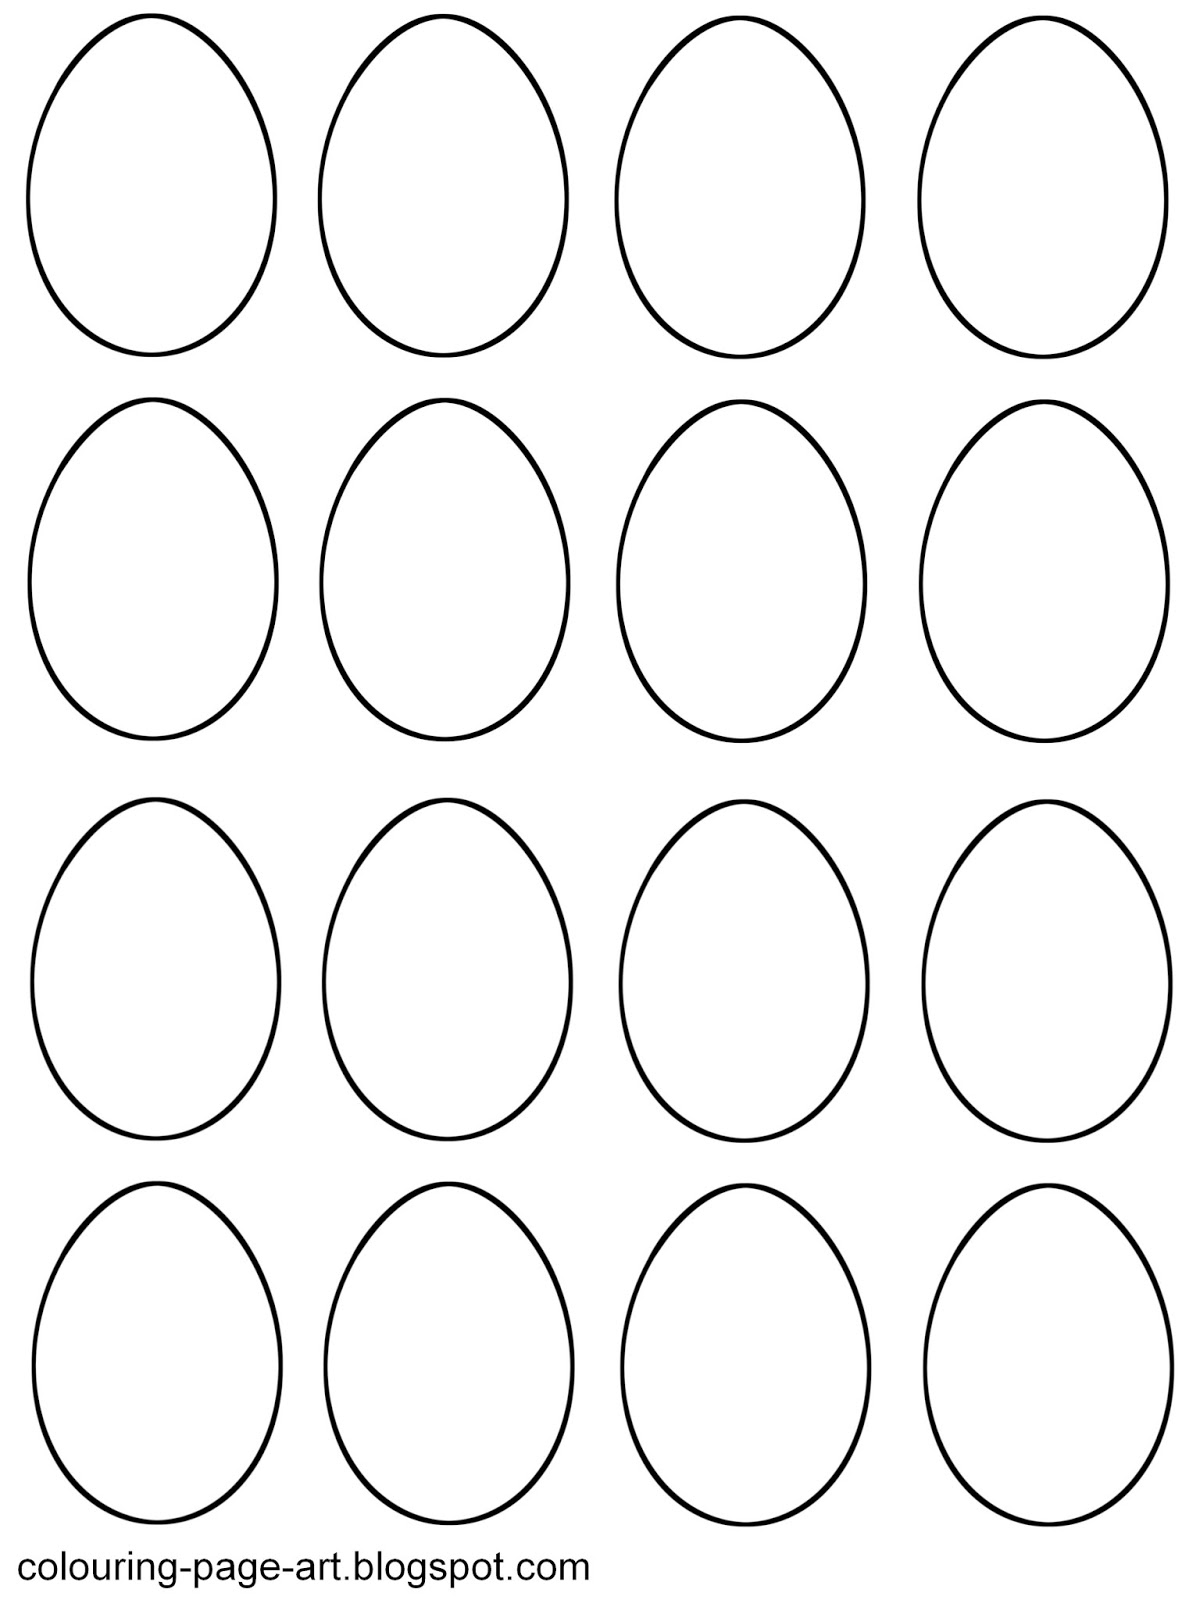 striped easter eggs multiple designs per sheet colouring page art